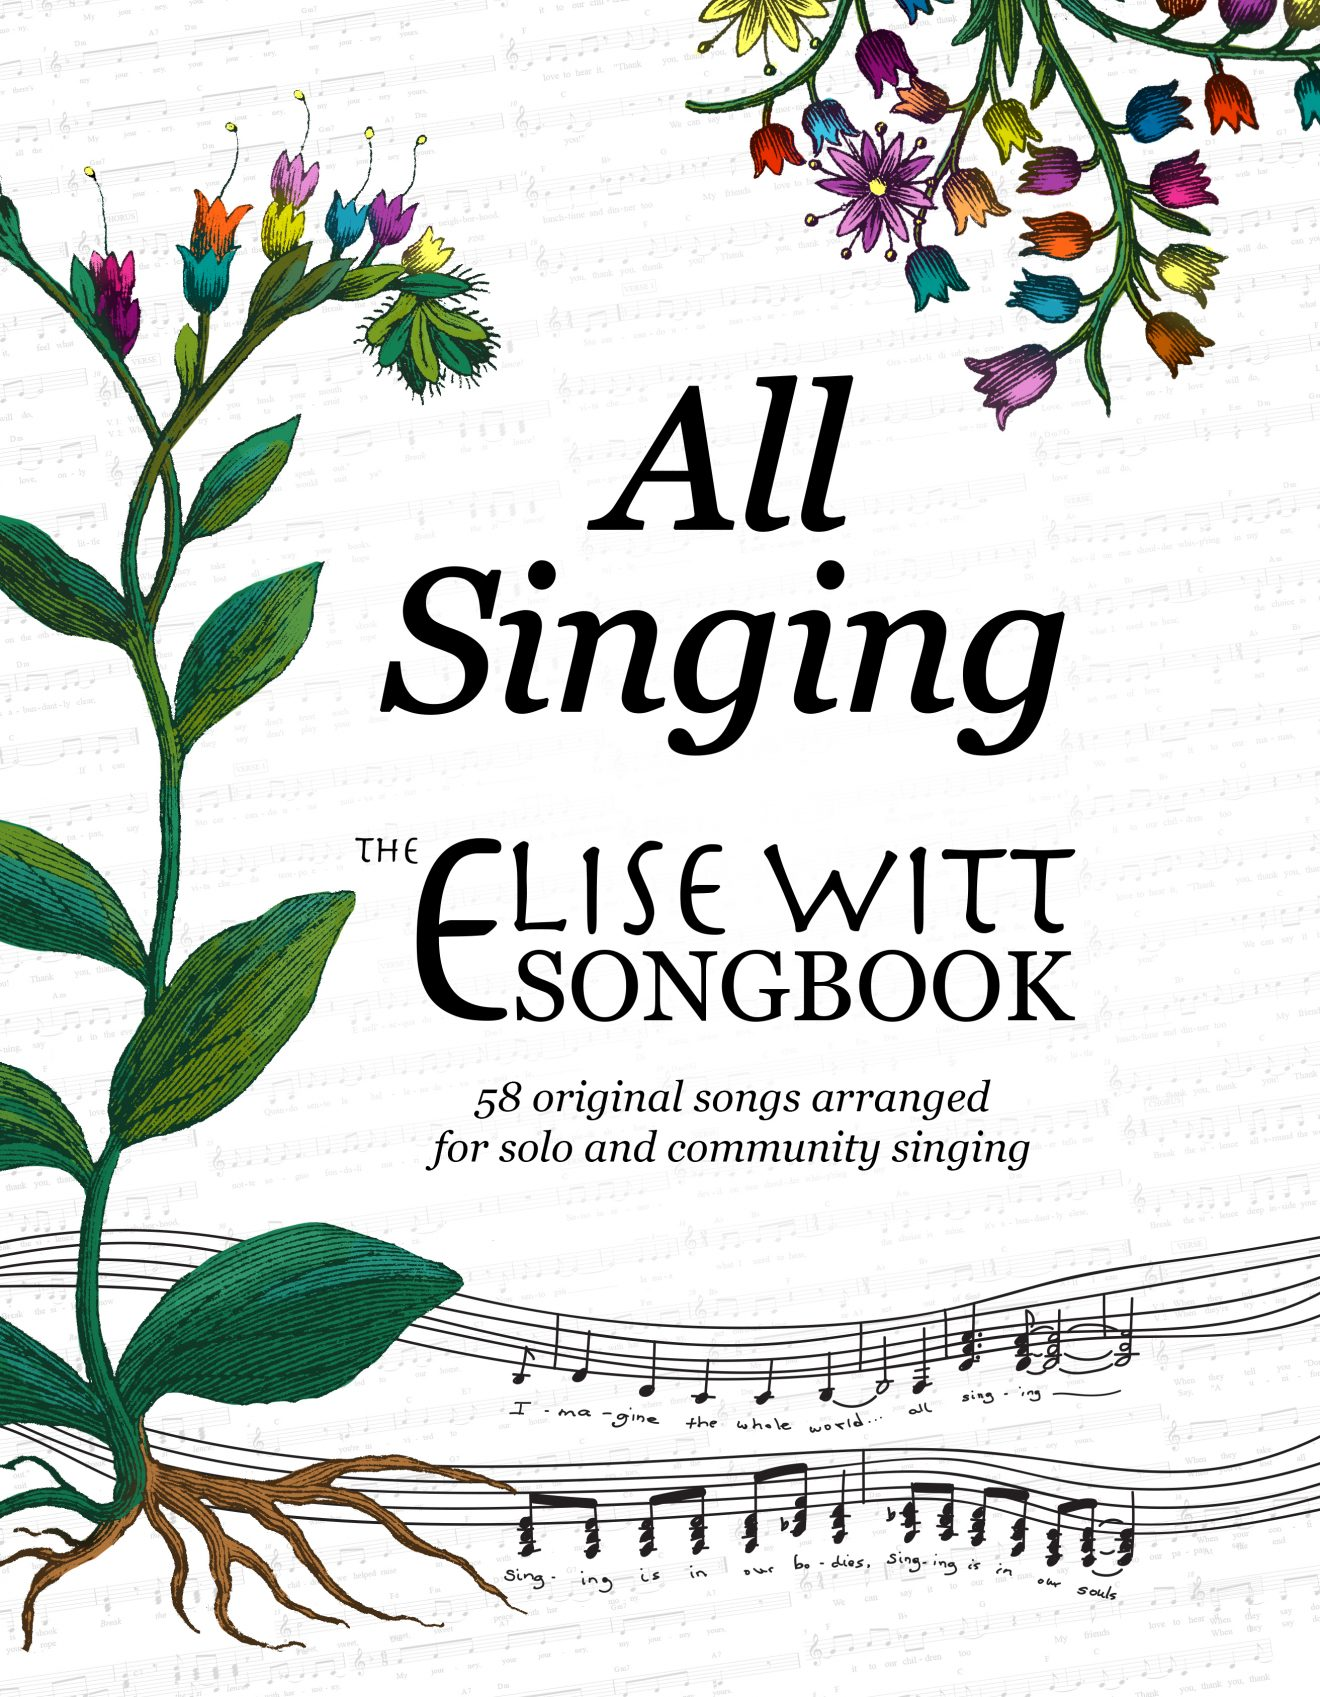 All Singing, The Elise Witt Songbook